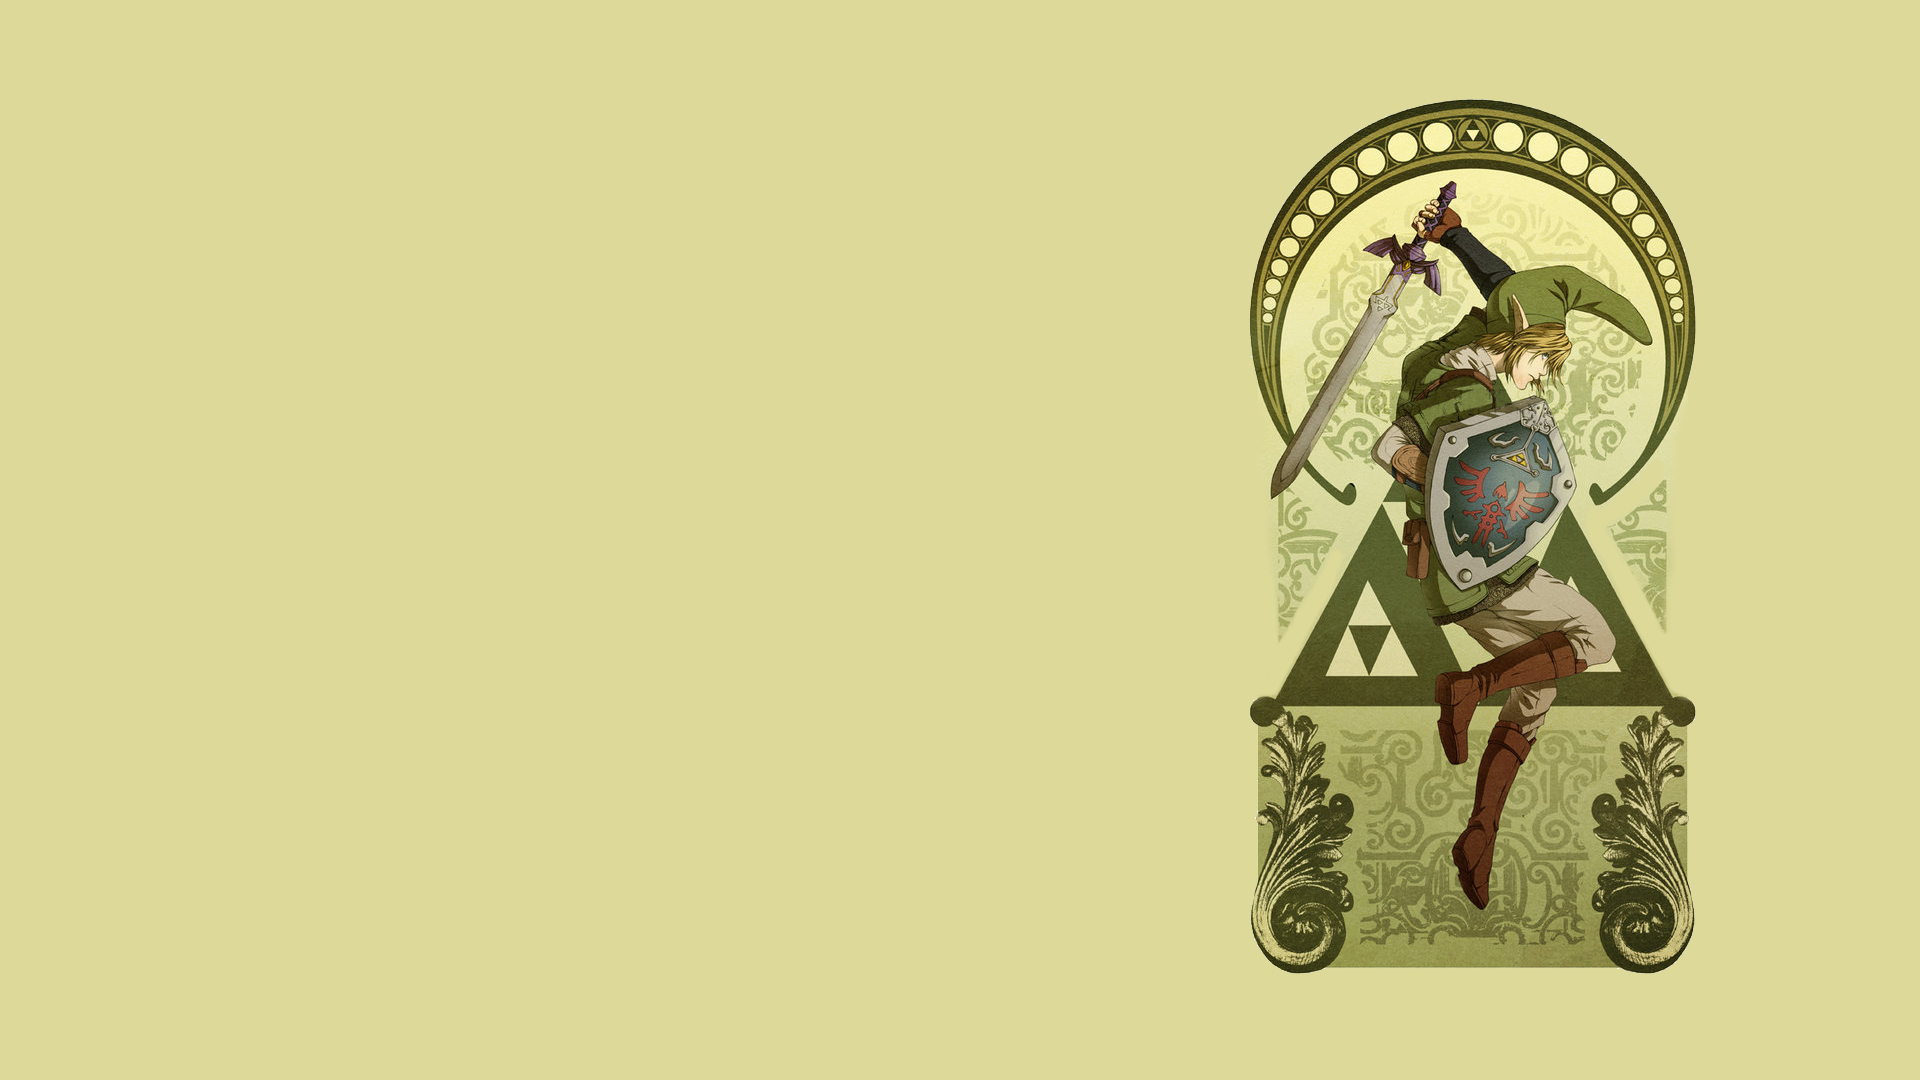 Link Zelda Wallpaper 1920x1080 Link Zelda Shield The Legend Of 1920x1080